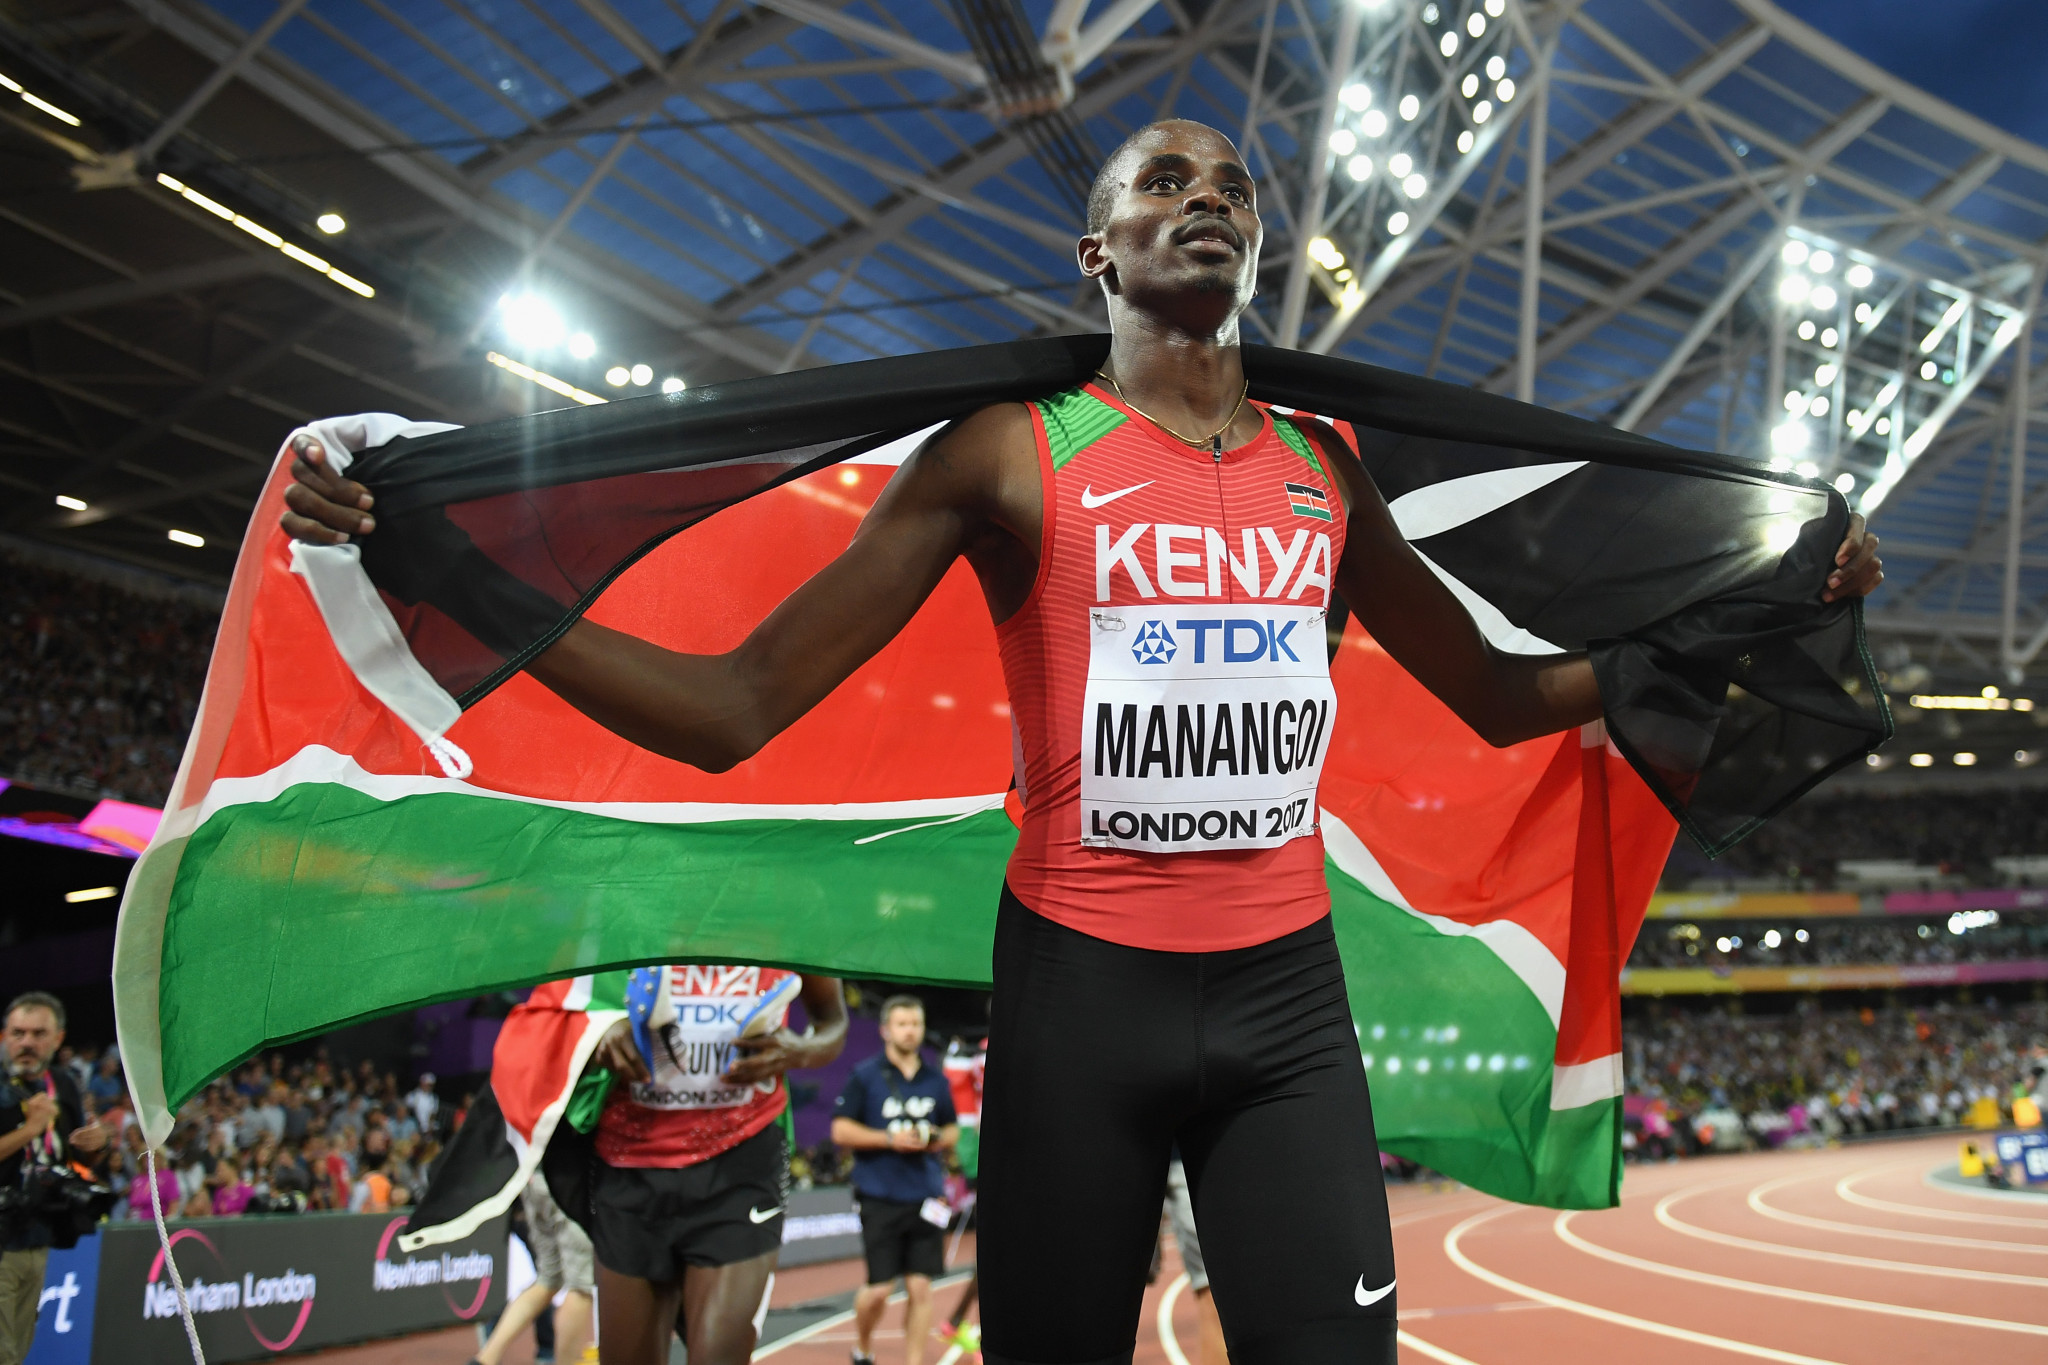 Kenya's 2017 World Championships 1500m gold medallist Elijah Manangoi has been banned for missing three out-of-competition drugs tests ©Getty Images